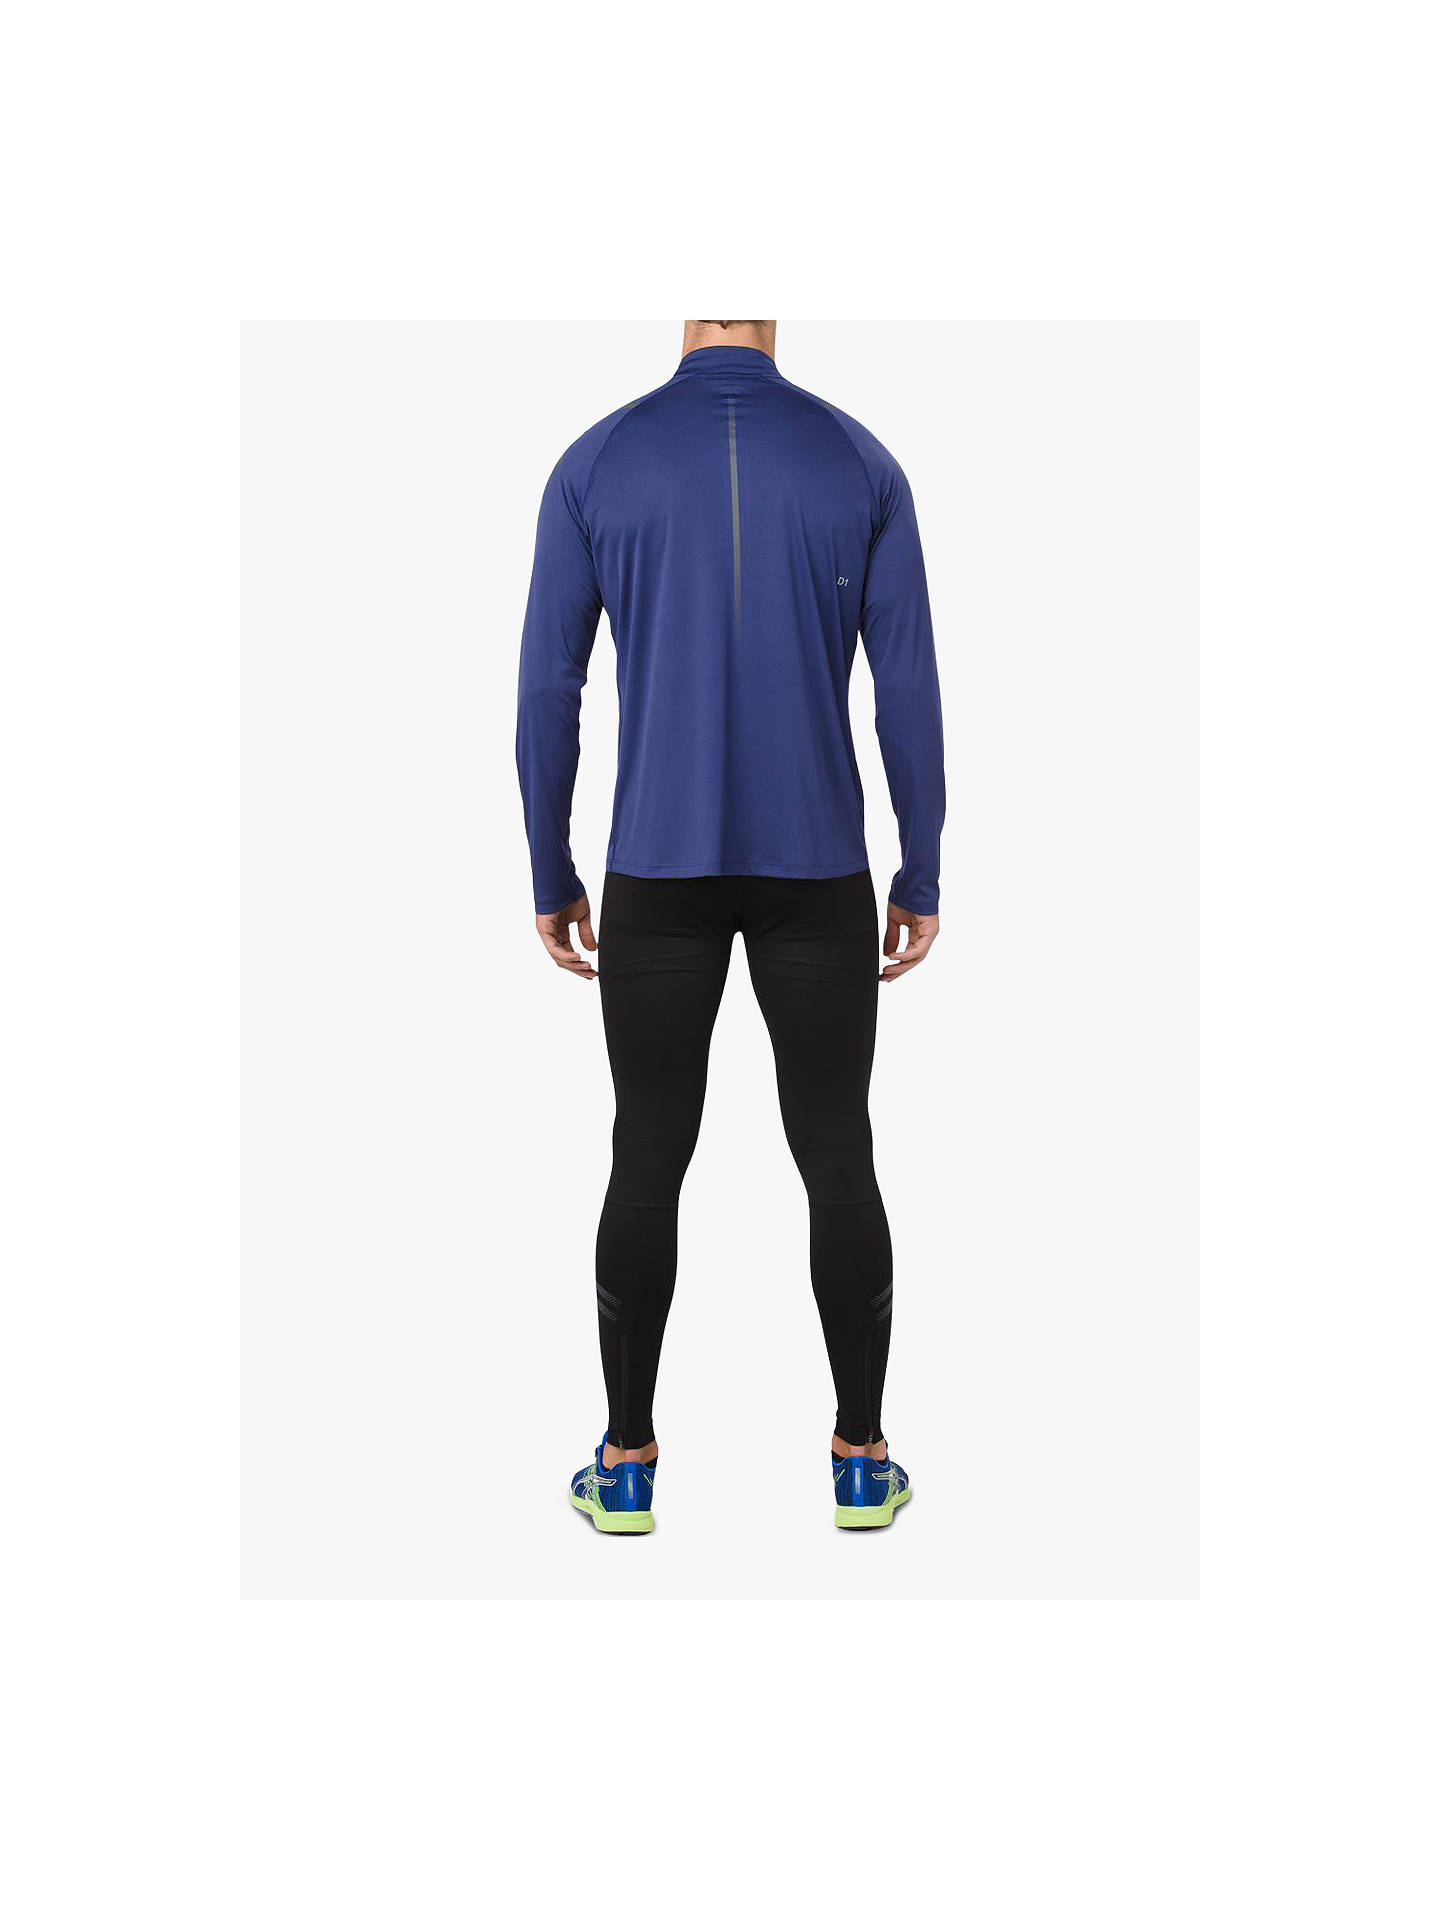 2771a4e9c4 ASICS Icon Long Sleeve 1/2 Zip Top, Blue at John Lewis & Partners